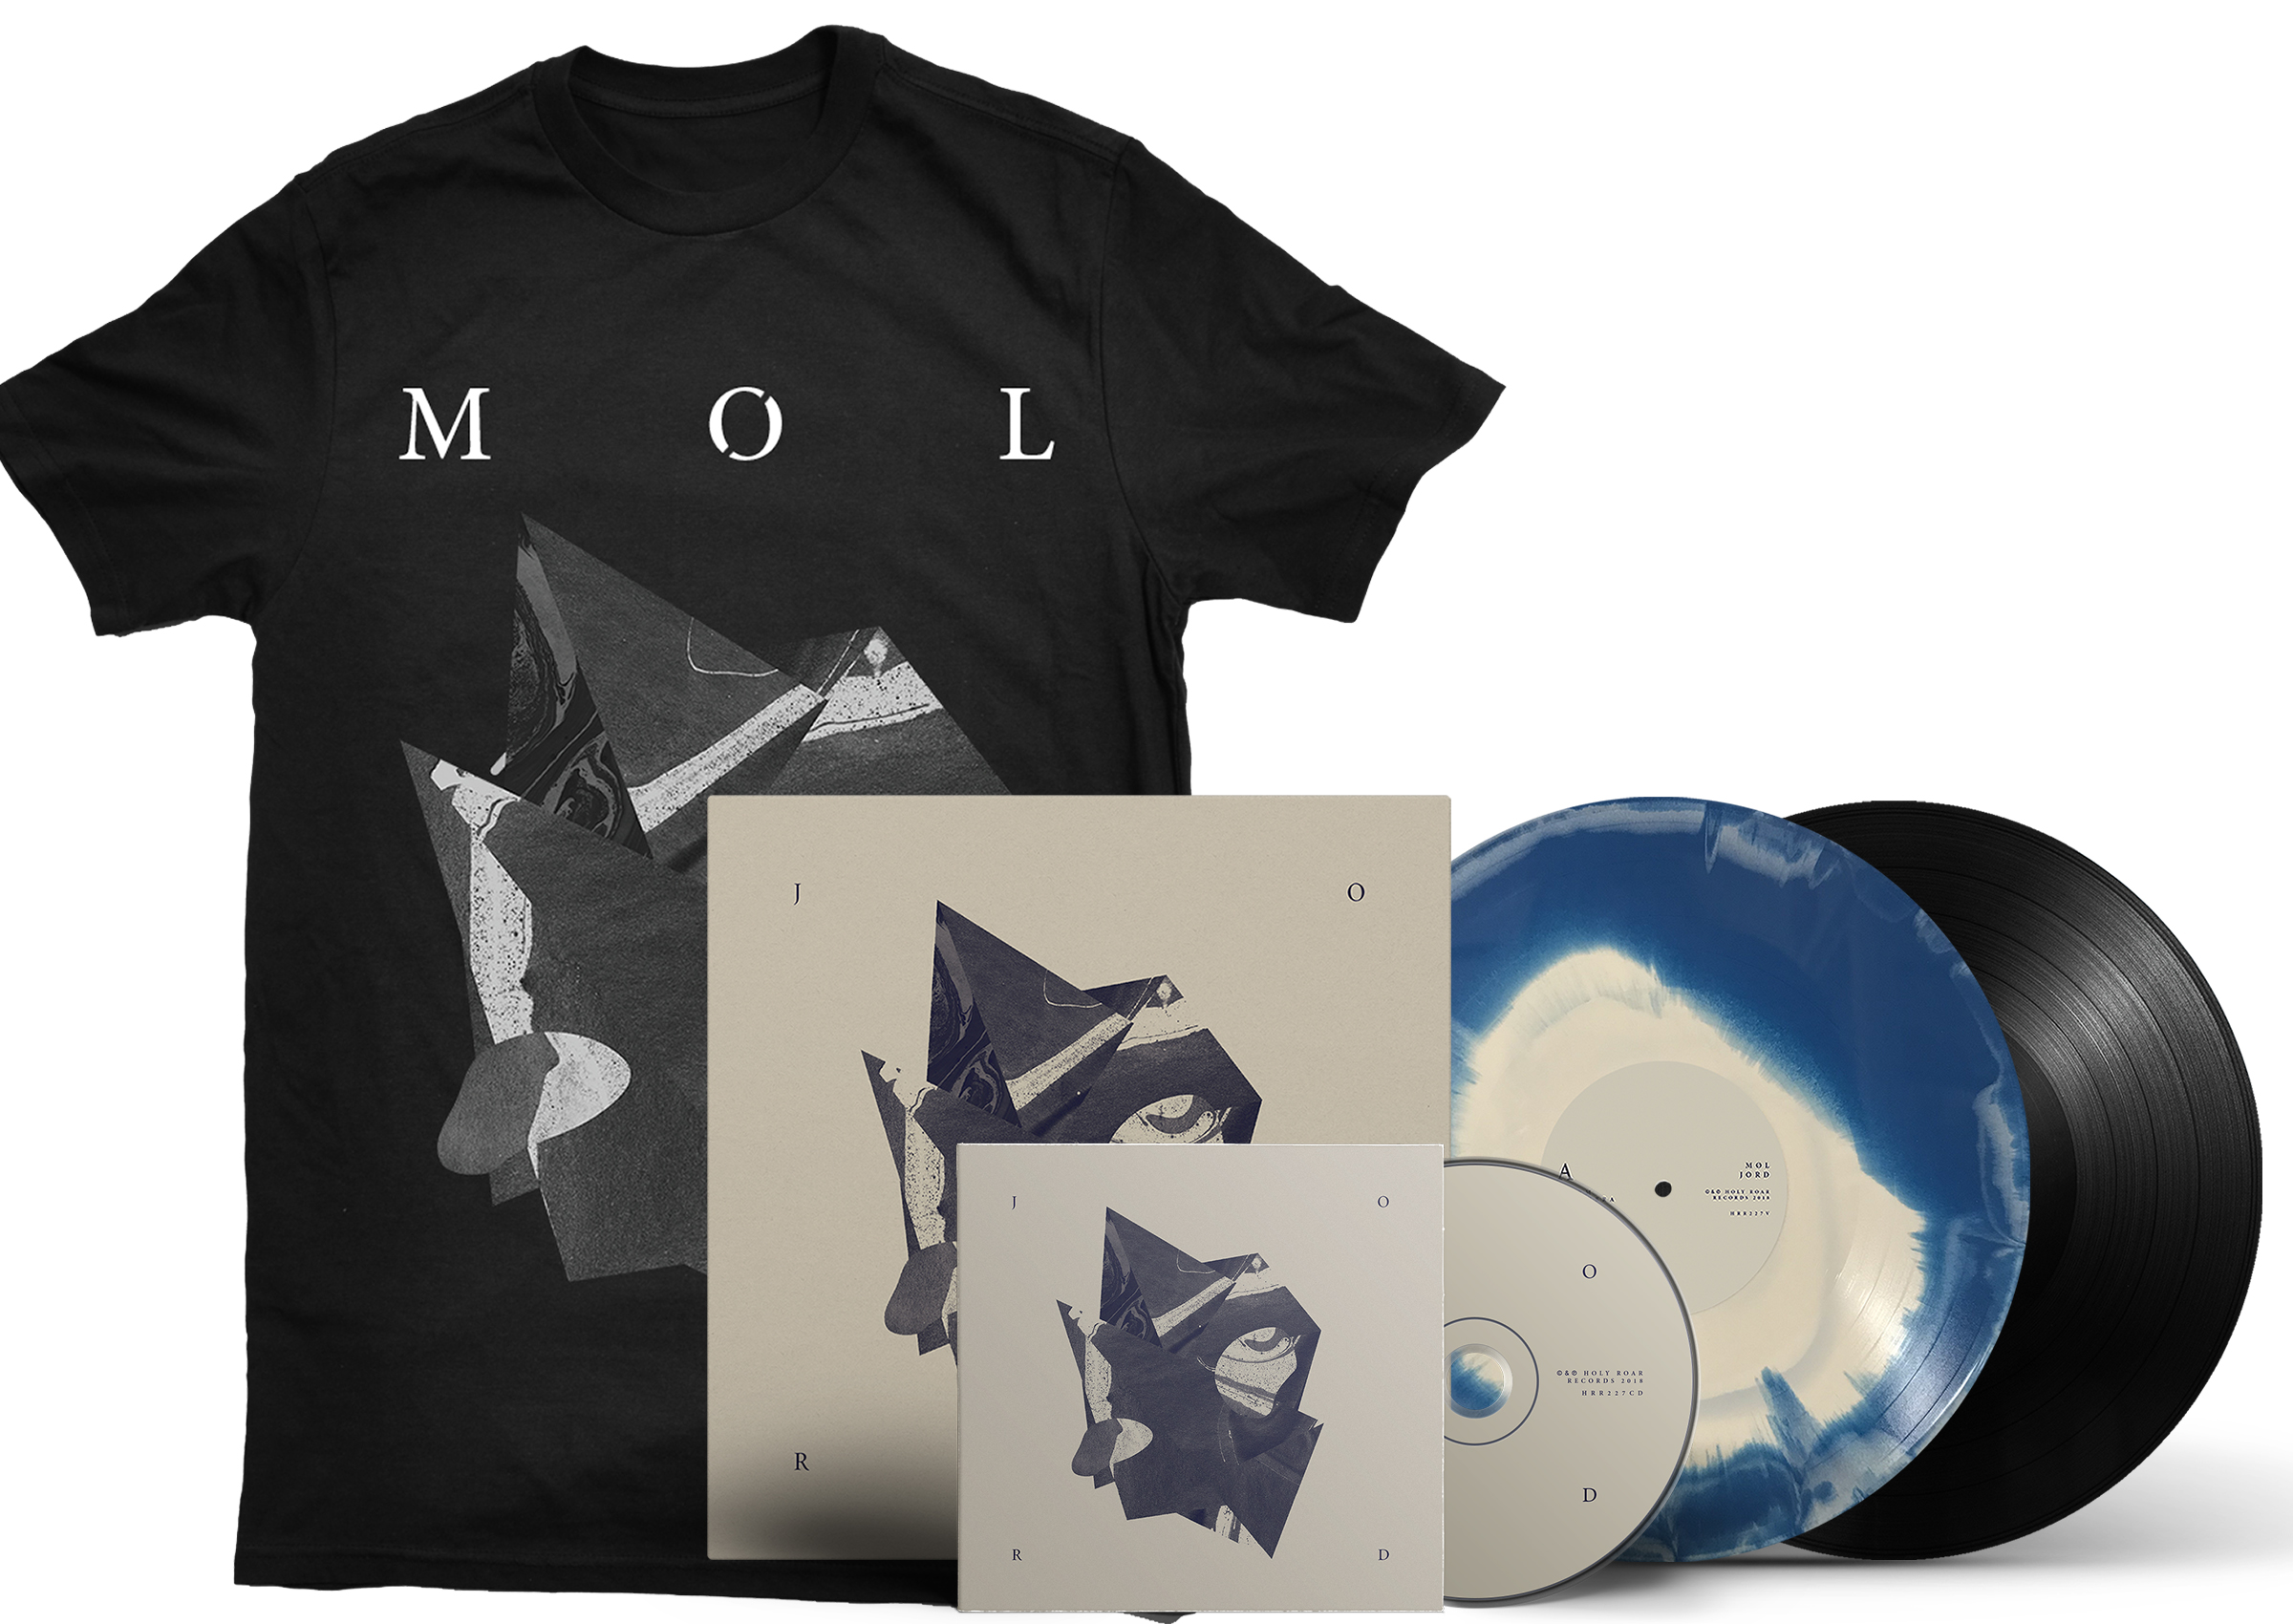 MØL - JORD shirt + LP + CD